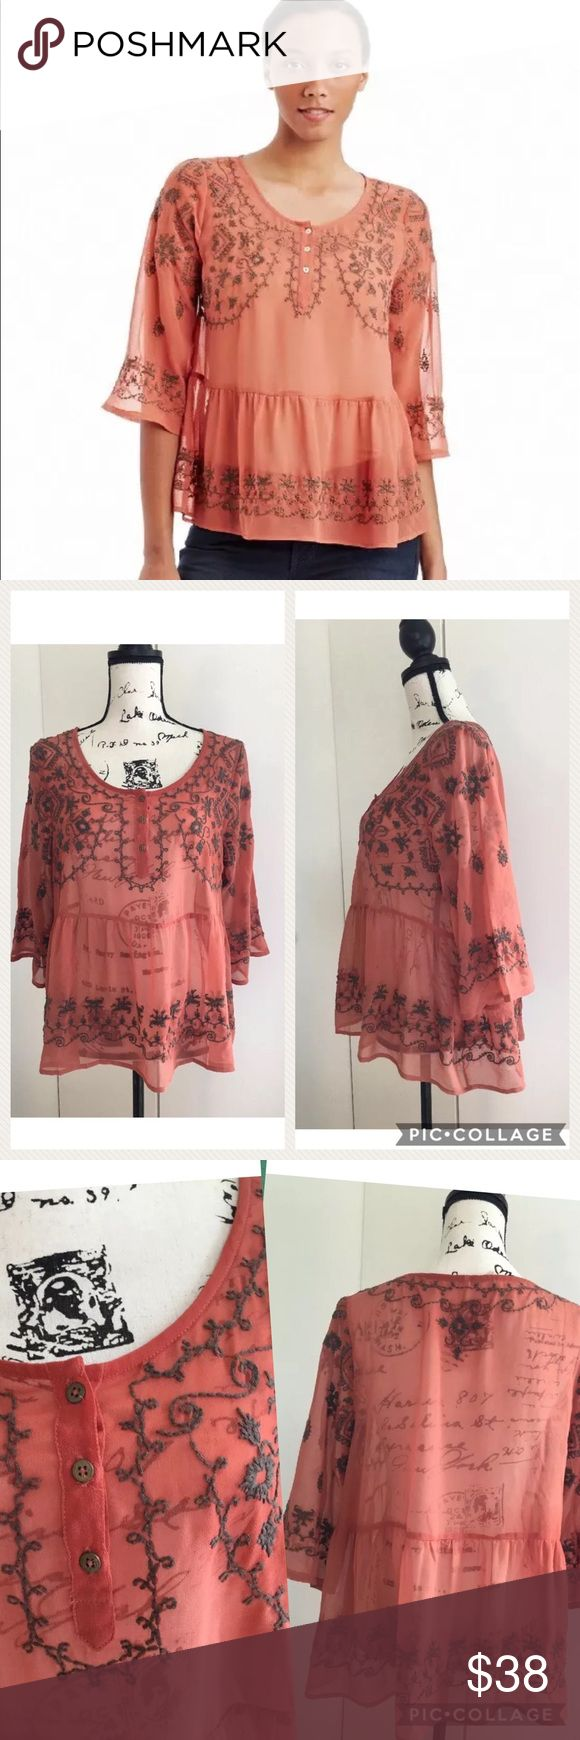 """Free People Sheer Embroidered Top Blouse Rust Free People breathes fresh life into your wardrobe with this sheer flowing top. An easy-to-layer piece, the embroidered details create instant colour and textural interest when worn over a tank or camisole.  Round neckline Three-button placket Elbow-length sleeves Ruched flare waist Sheer fabric 100% polyester Hand wash Imported Measurements flat lay: bust 44, length 24"""", sleeve length 16"""". Free People Tops Blouses"""